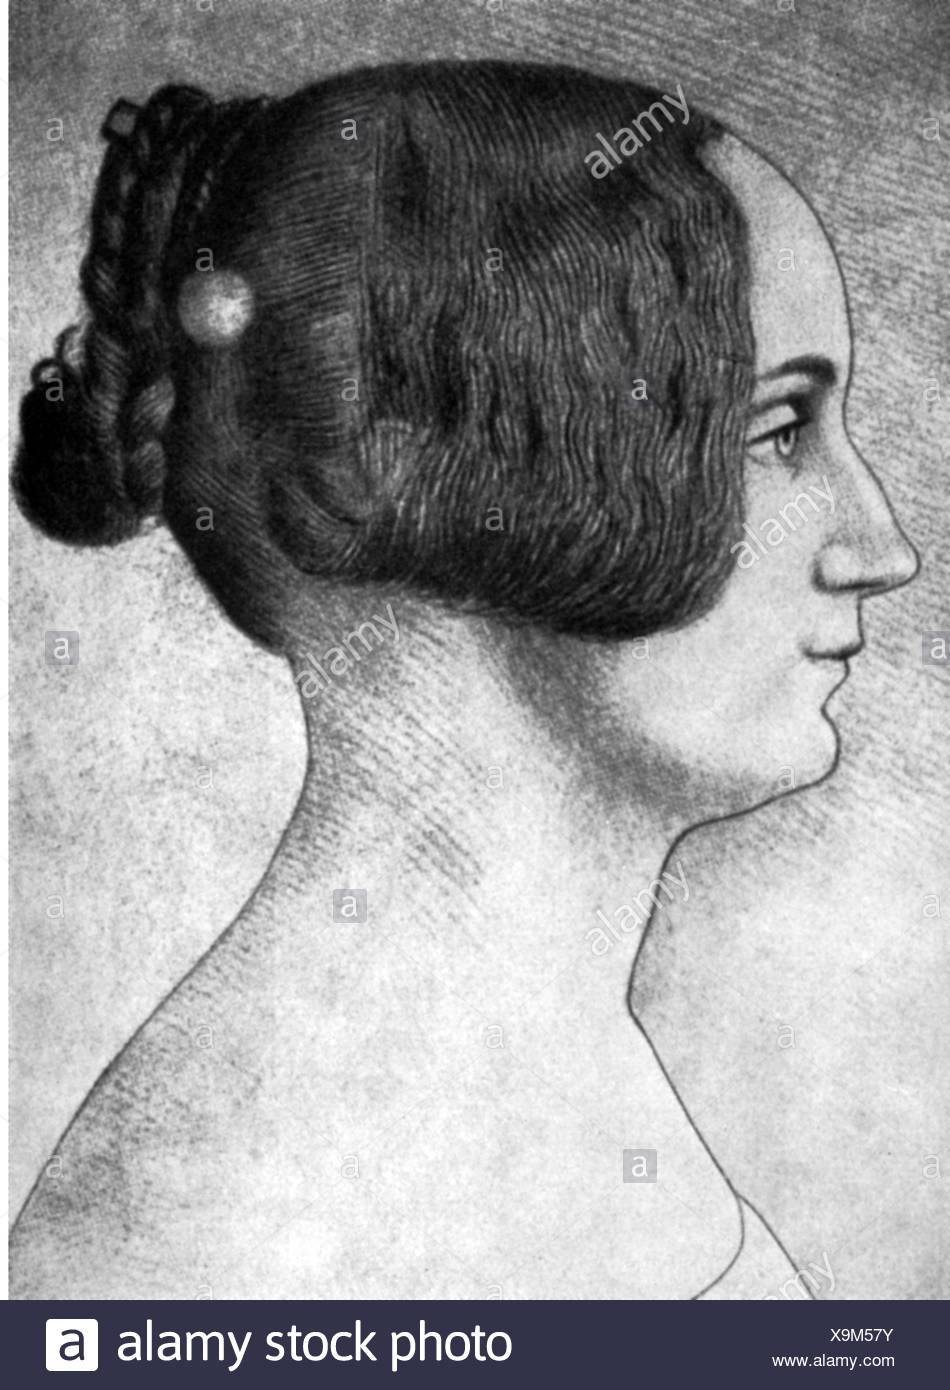 Storm, Constanze, 5.5.1825 - 24.5.1865, wife of Theodor Storm, portrait, drawing, 1843, Stock Photo